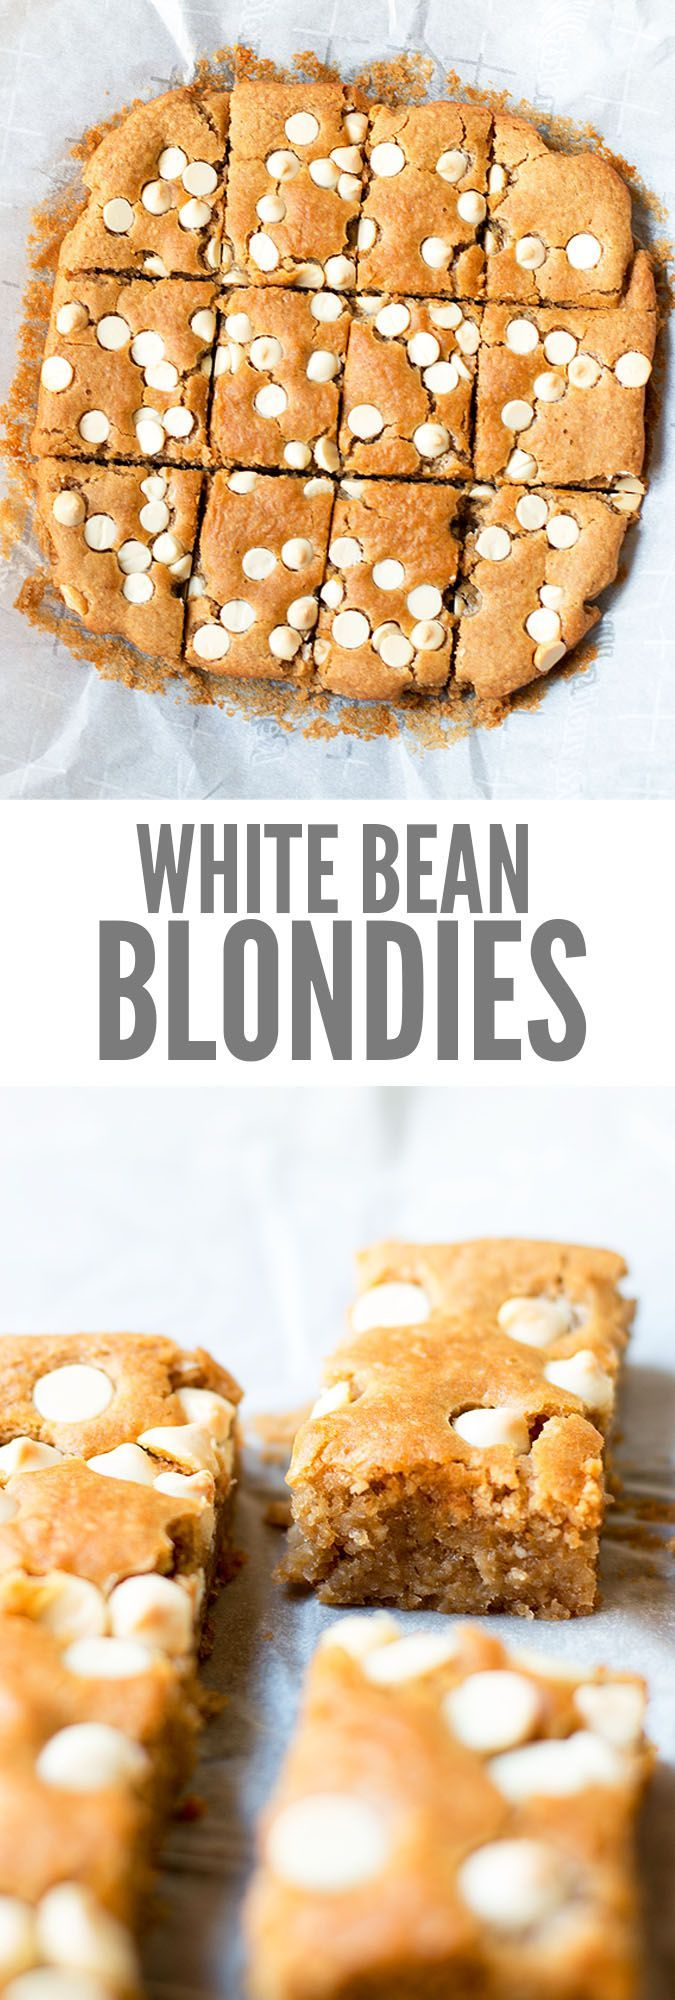 My kids beg for white bean blondies and devour the whole pan. Fine by me, they're naturally sweetened, healthy, made mostly of beans and really good! :: kids beg for white bean blondies and devour the whole pan. Fine by me, they're naturally sweetened, healthy, made mostly of beans and really good! ::